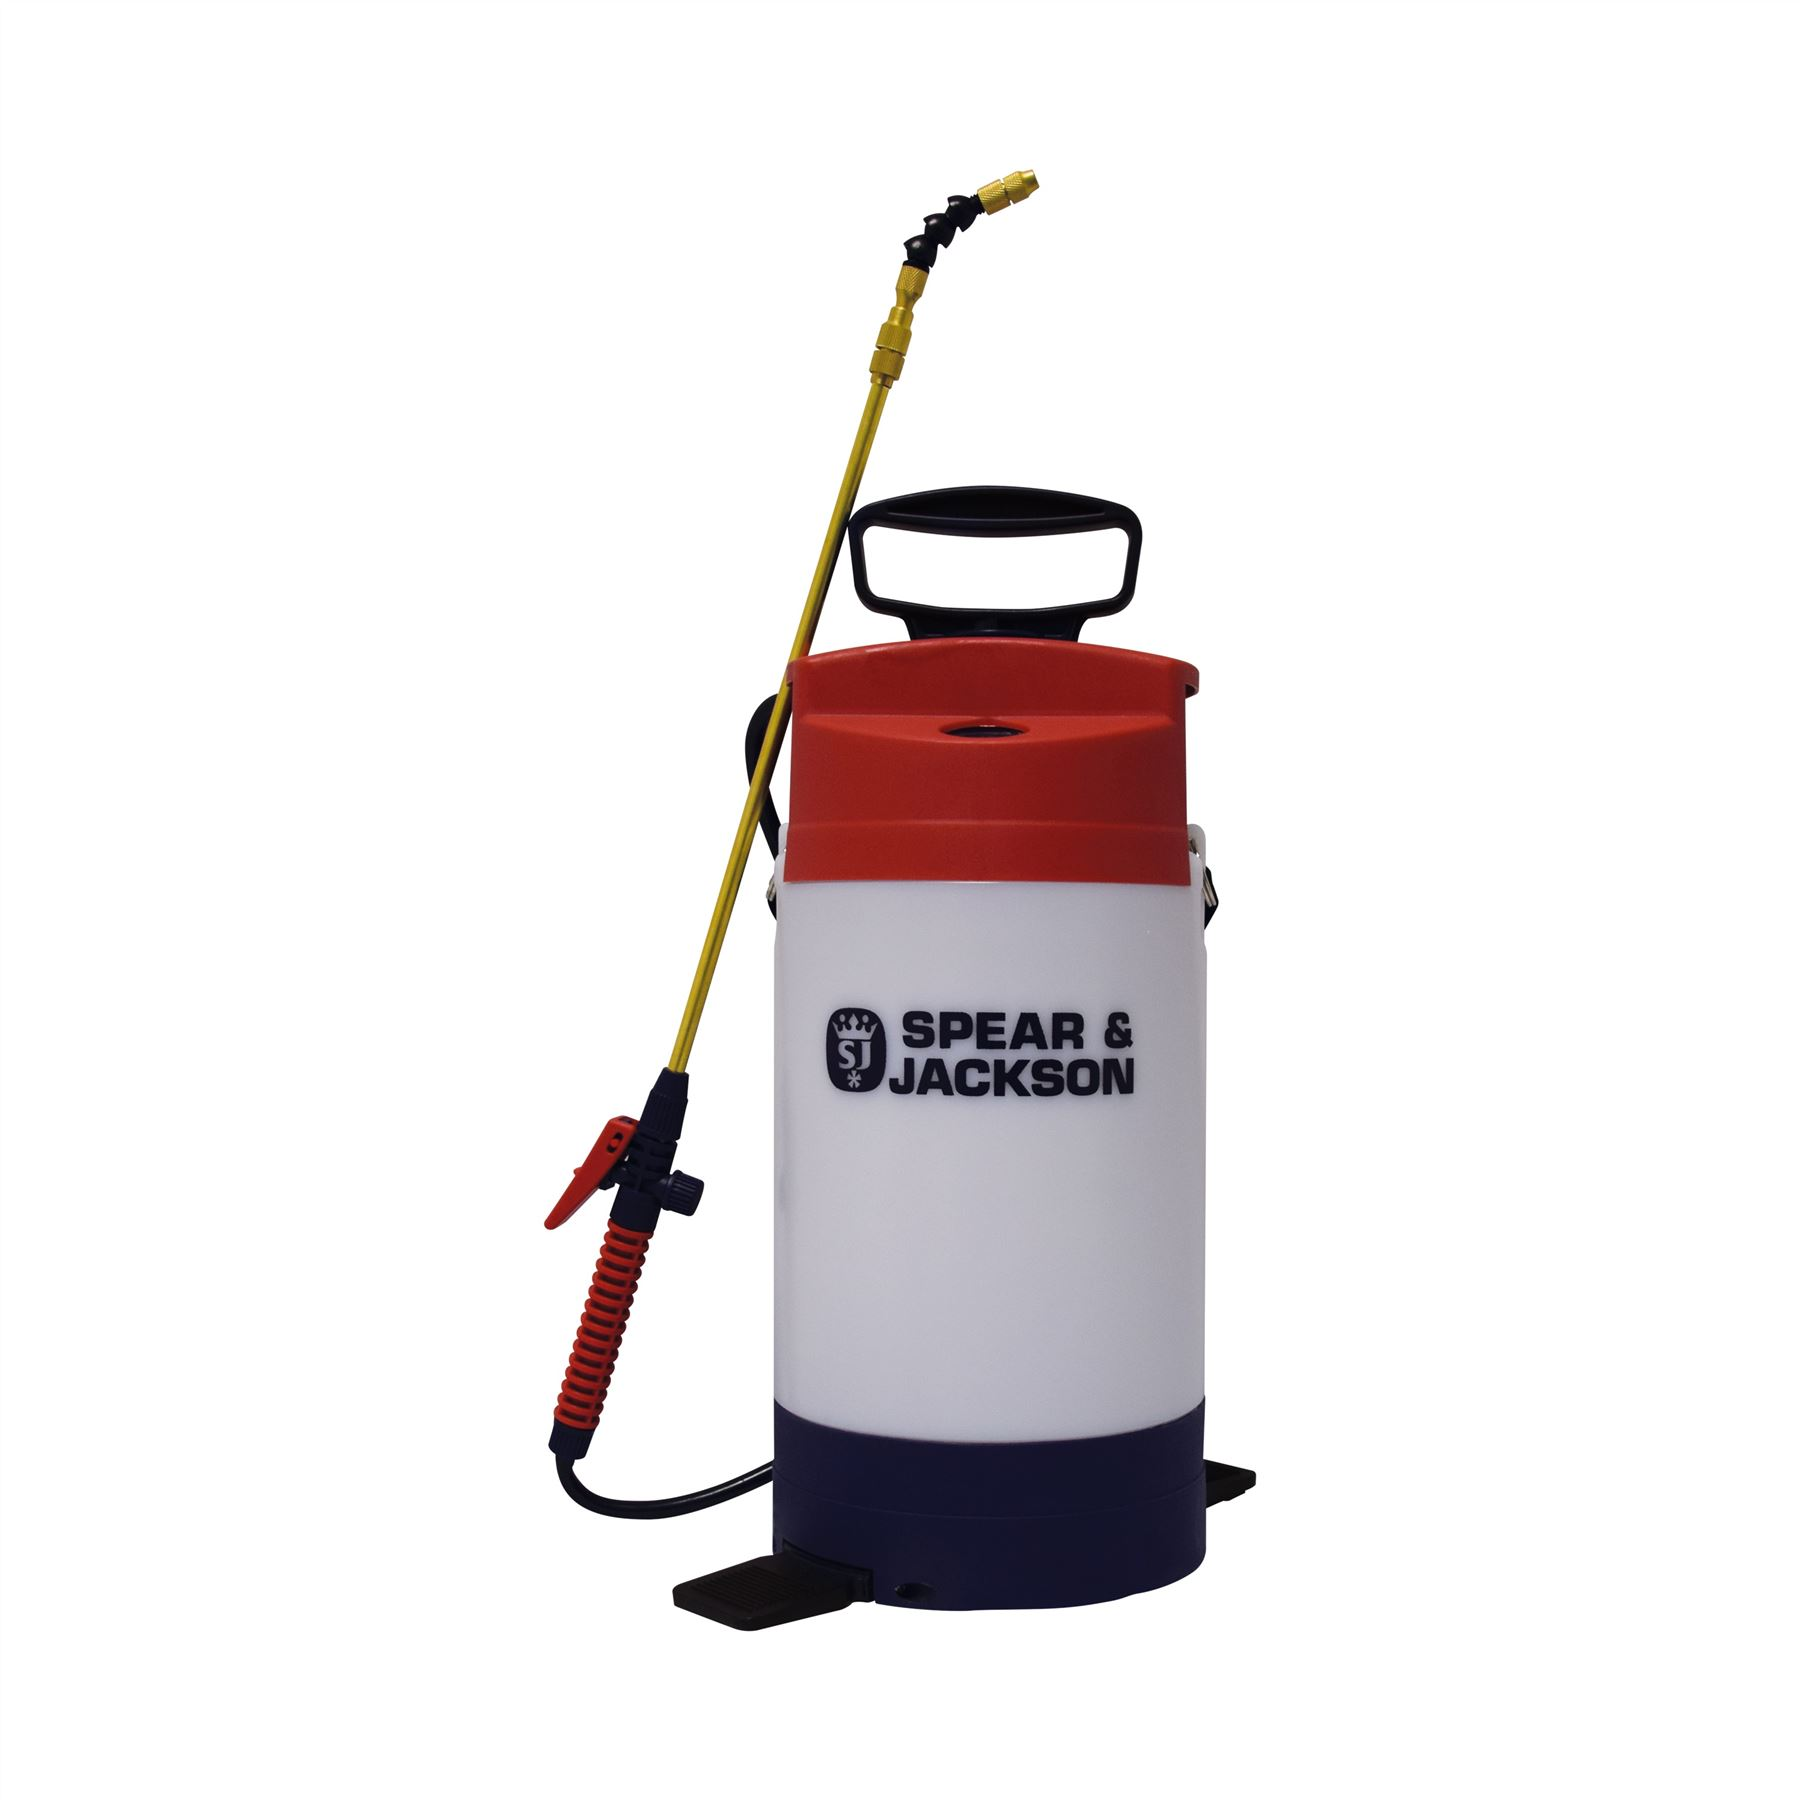 Spear /& Jackson Car Spray Garden Pump Action Pressure Sprayer 5 Litre